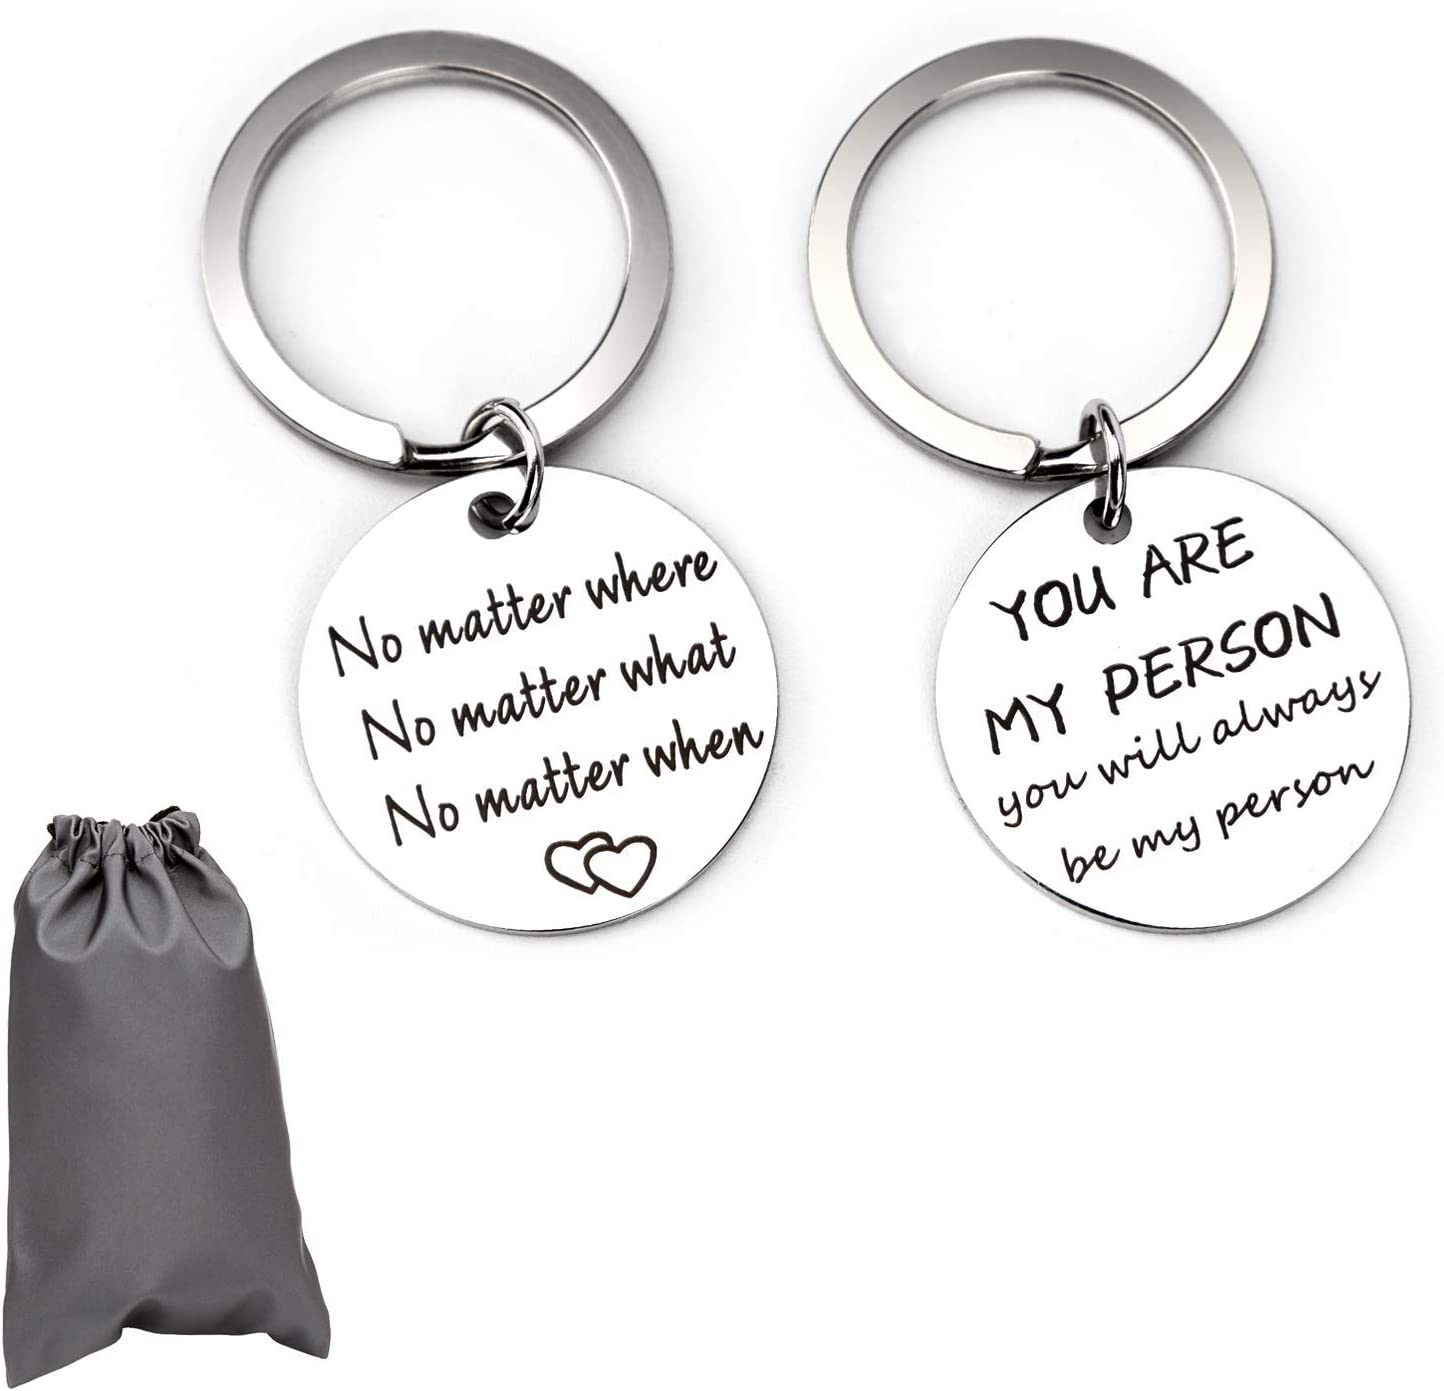 AIEX 2PCS Couples Keychains Stainless Steel Pendant Lover Keychain You are My Person You Will Always Be My Person Best Friends Gift for Valentines Day Anniversary Wedding Birthday Gift